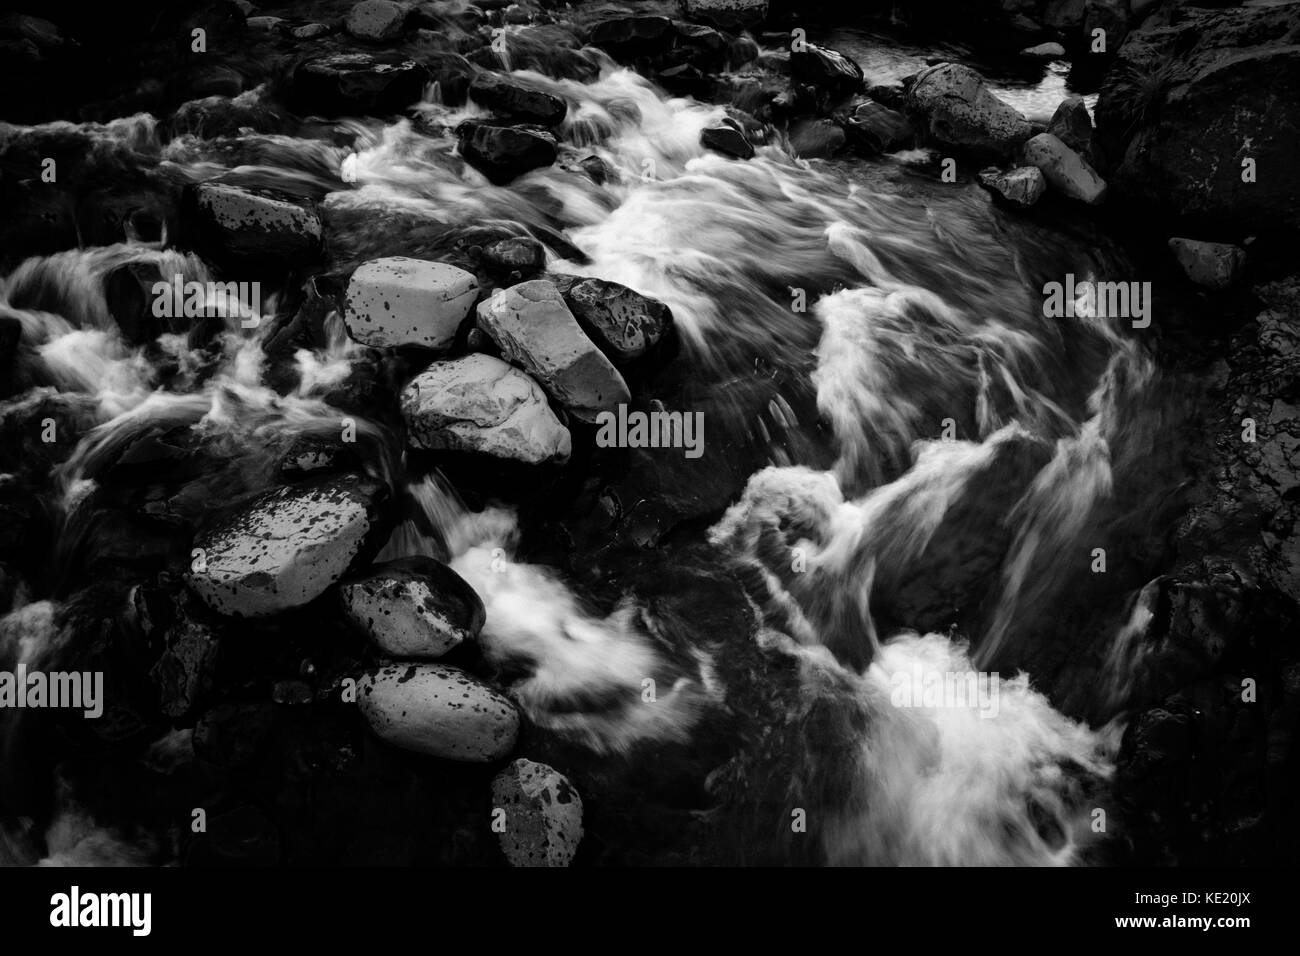 River with rocks in motion blur, Iceland in summer, dramatic black and white - Stock Image